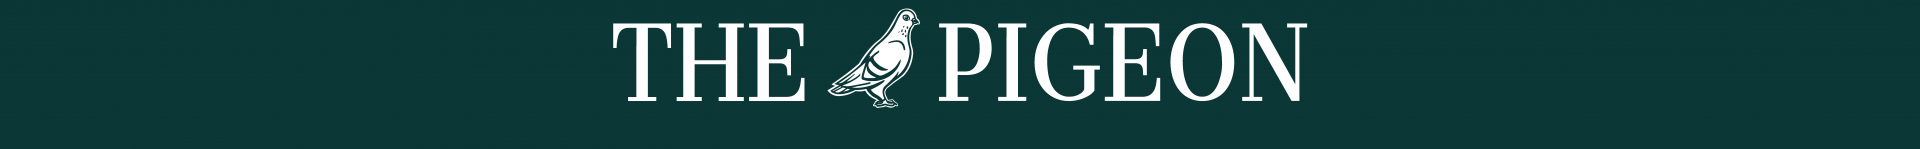 cropped-pigeon-banner-small-5.png